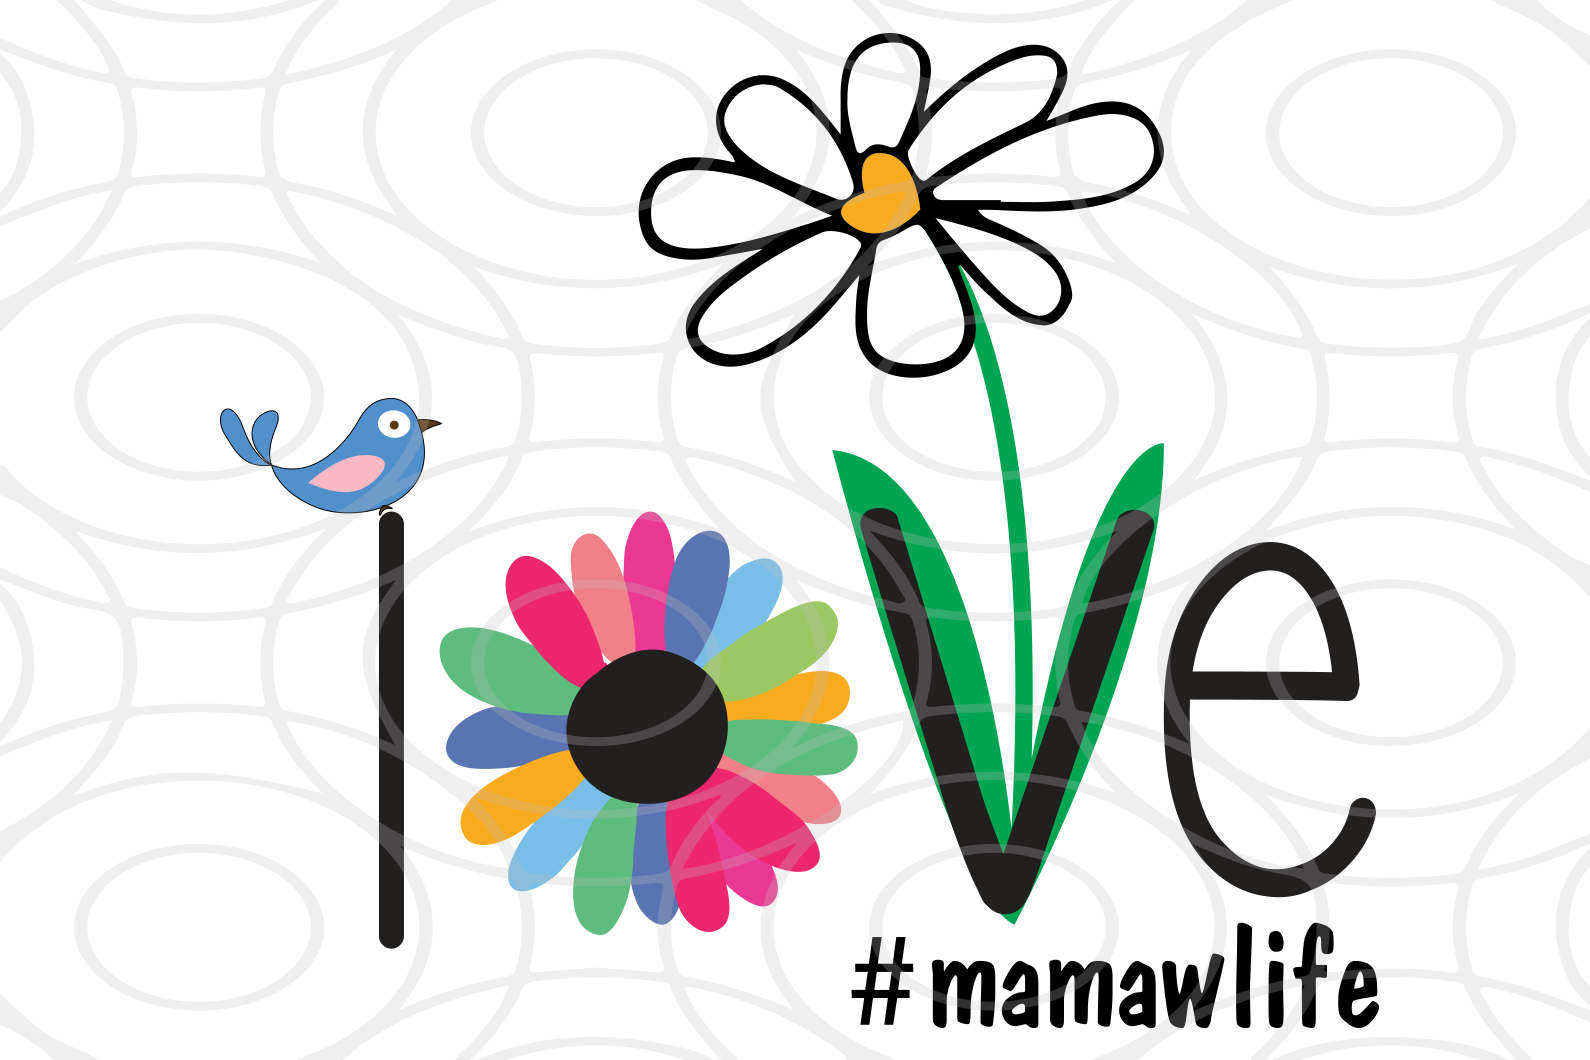 Love mama life SVG, mother's day svg, mother day, mother svg, mom svg, nana svg, mimi svg For Silhouette, Files For Cricut, SVG, DXF, EPS, PNG Instant Download